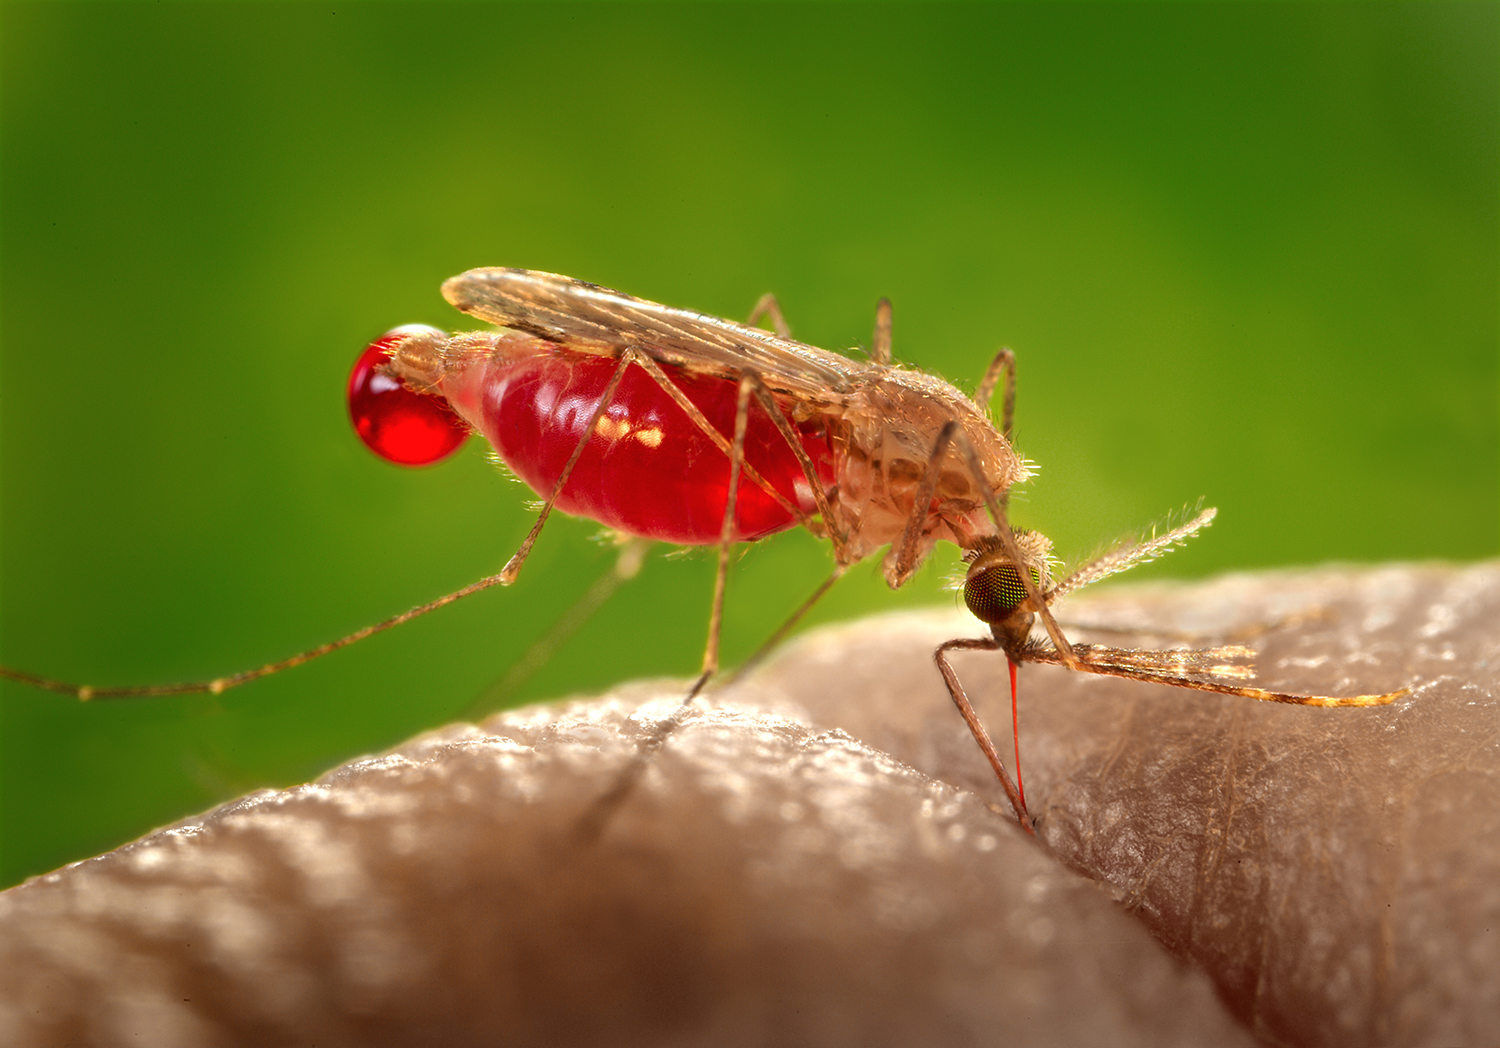 The Anopheles gambiae mosquito transmits the world's most dangerous malaria parasite, which kills 600,000 people a year.